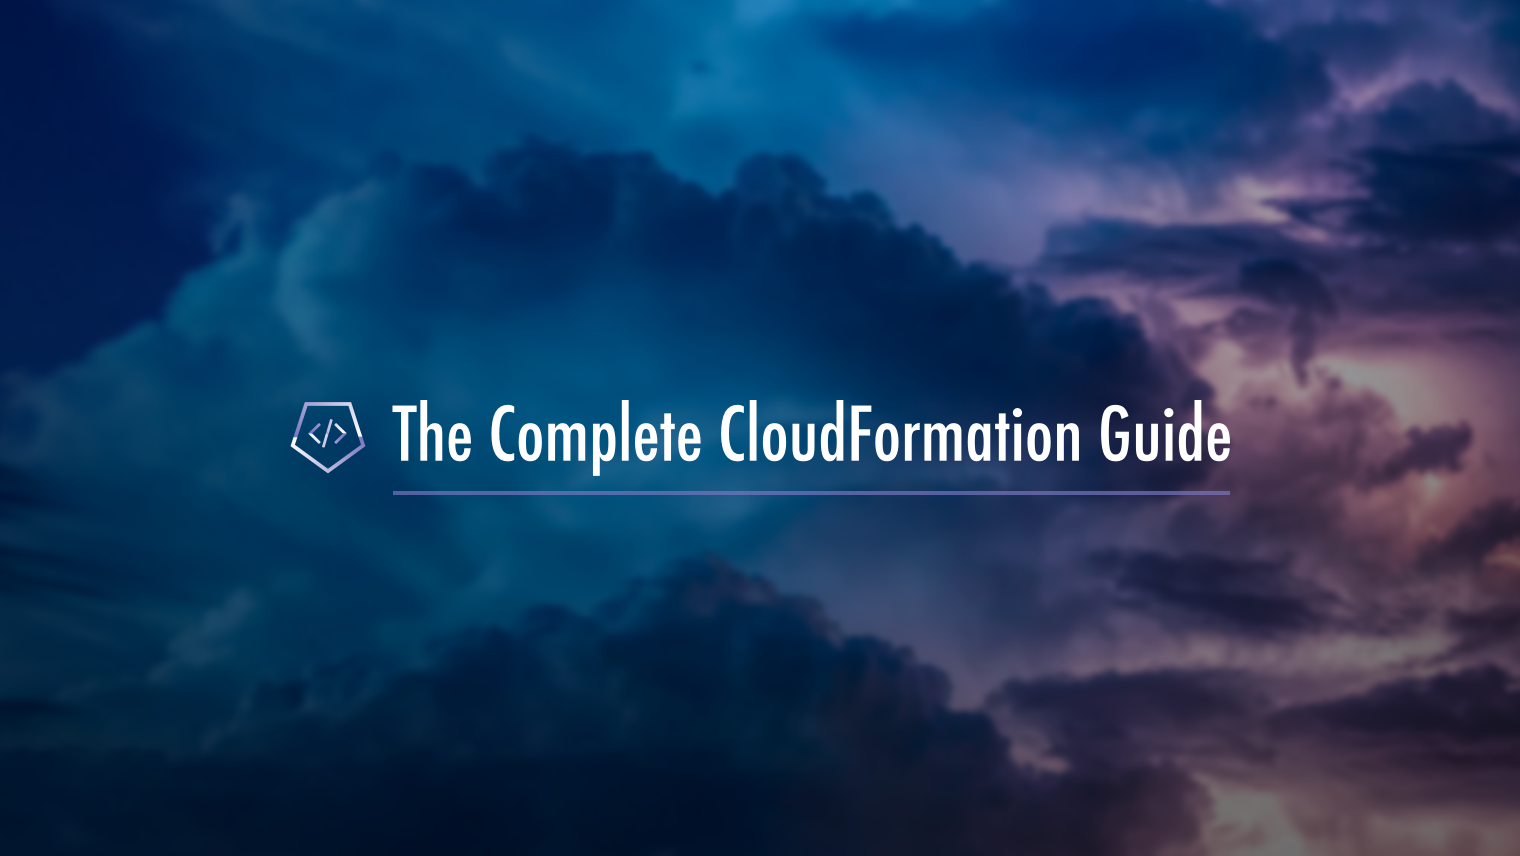 The Complete CloudFormation Guide